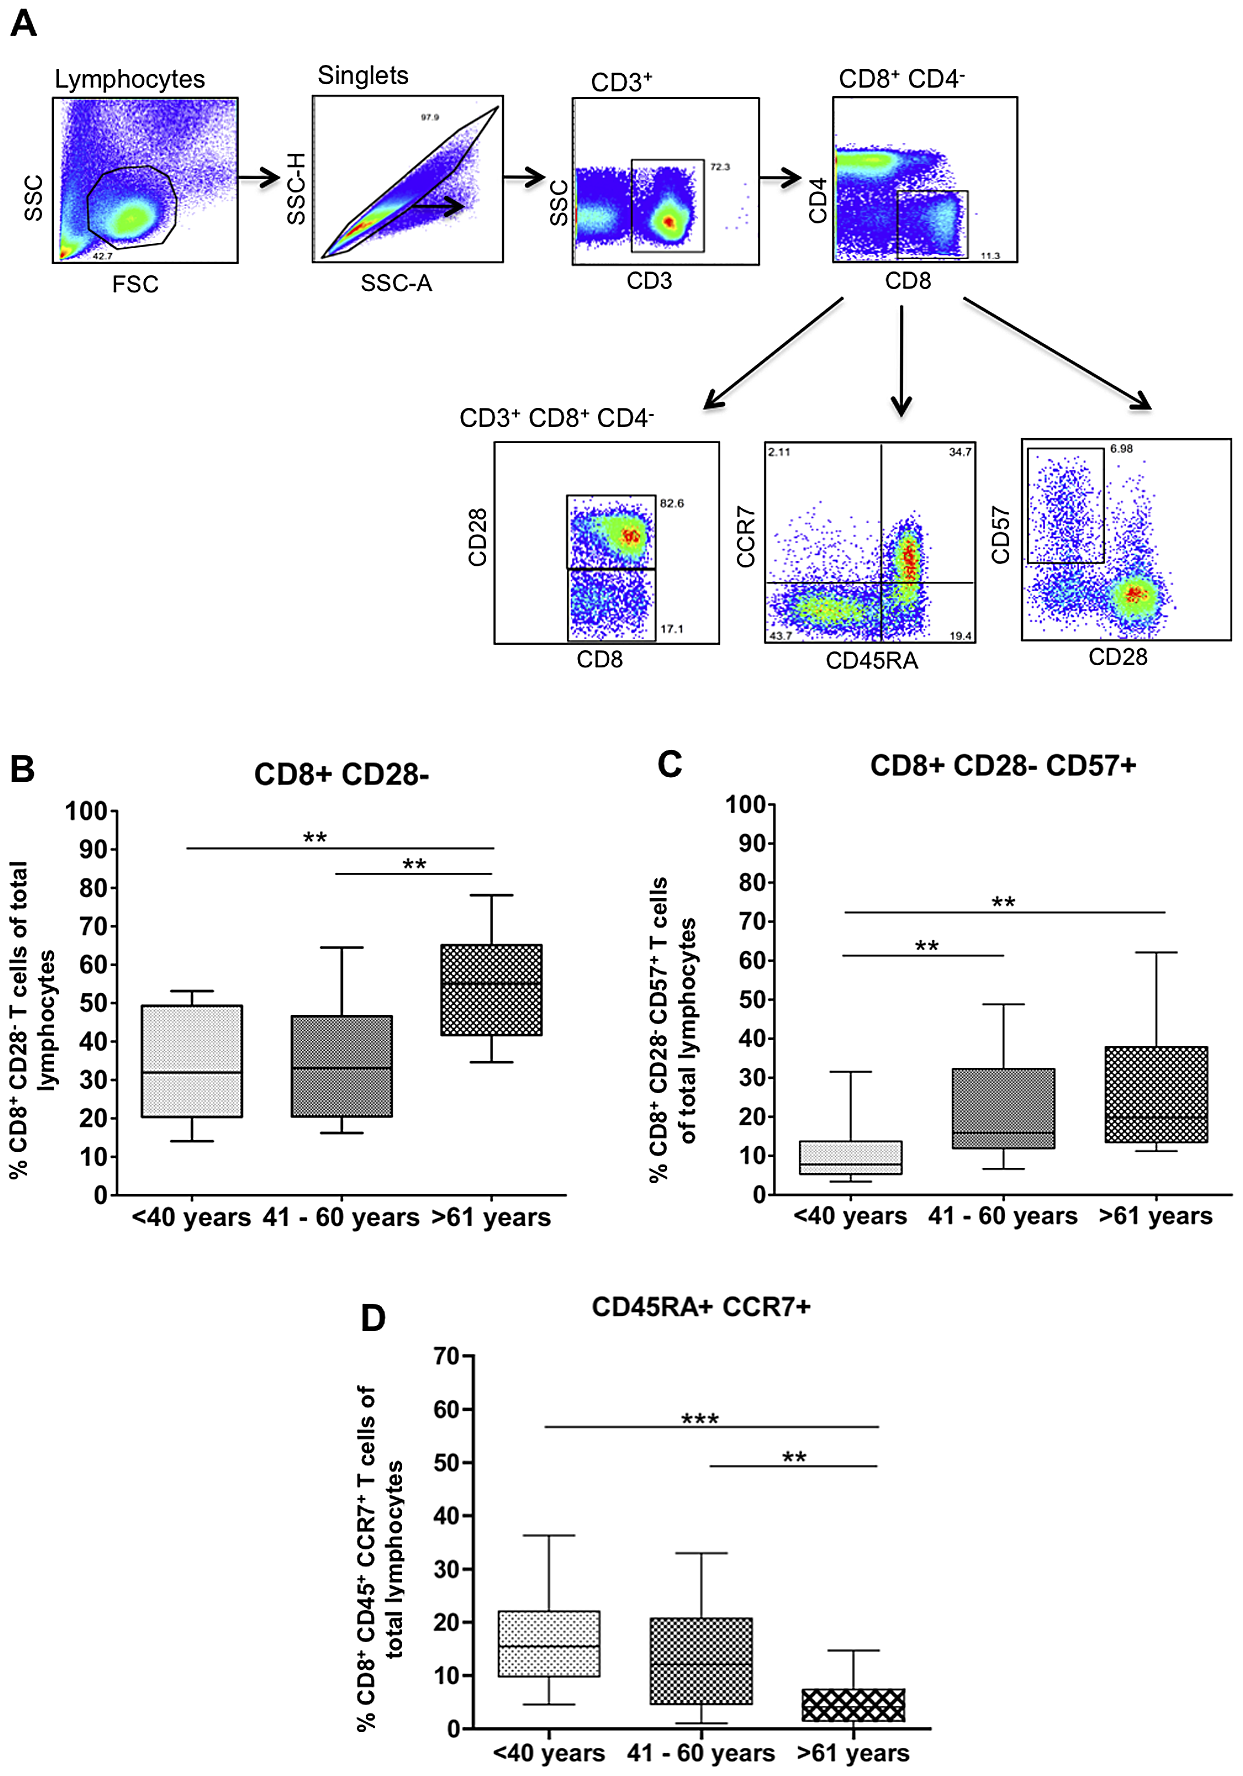 Ageing results in increased frequencies of highly-differentiated CD8+ T cells and decreased frequencies of naïve CD8+ T cells.